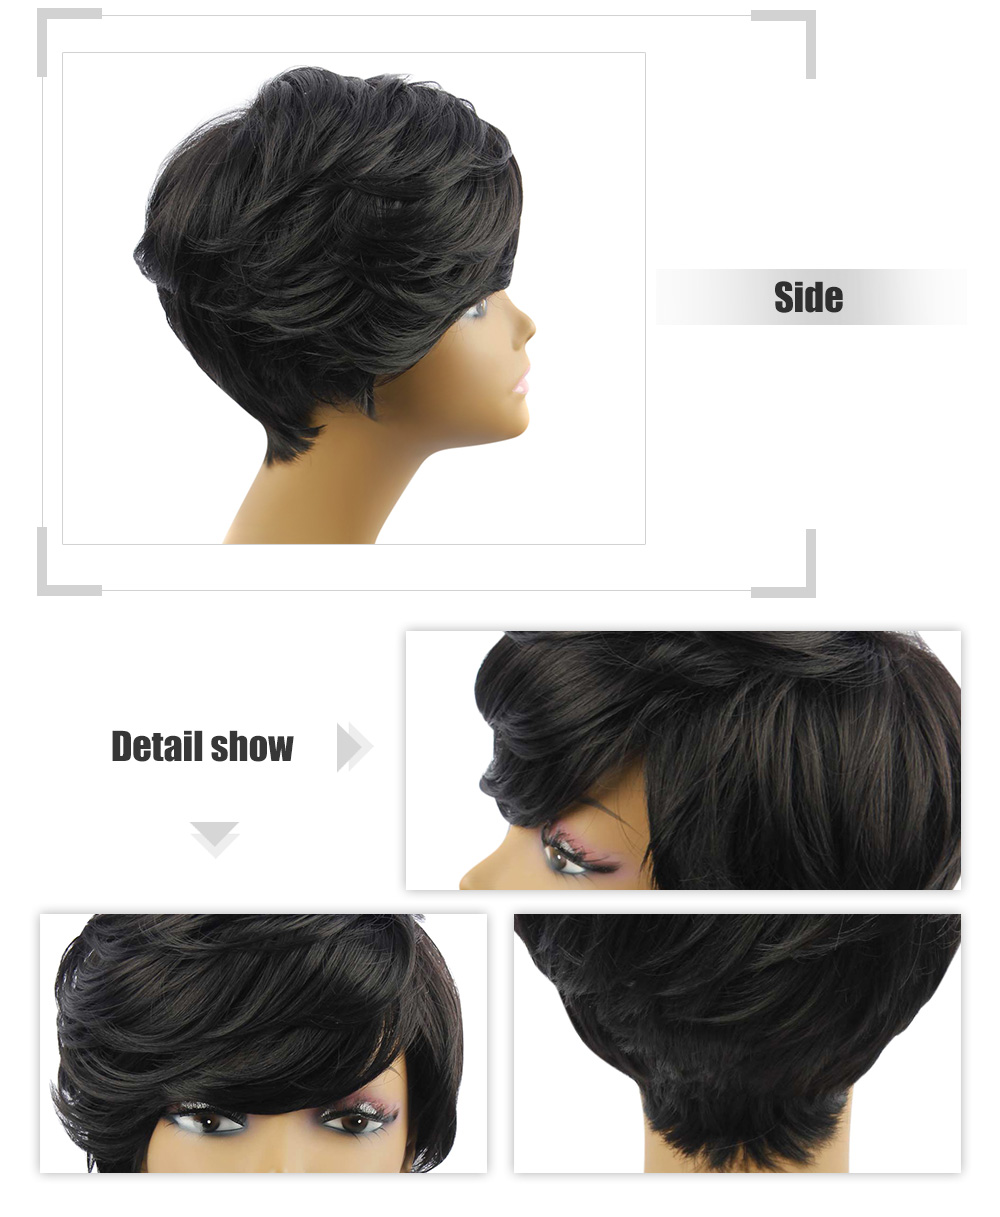 AISIHAIR Short Slightly Curly Black Synthetic Wigs Side Bangs for Women